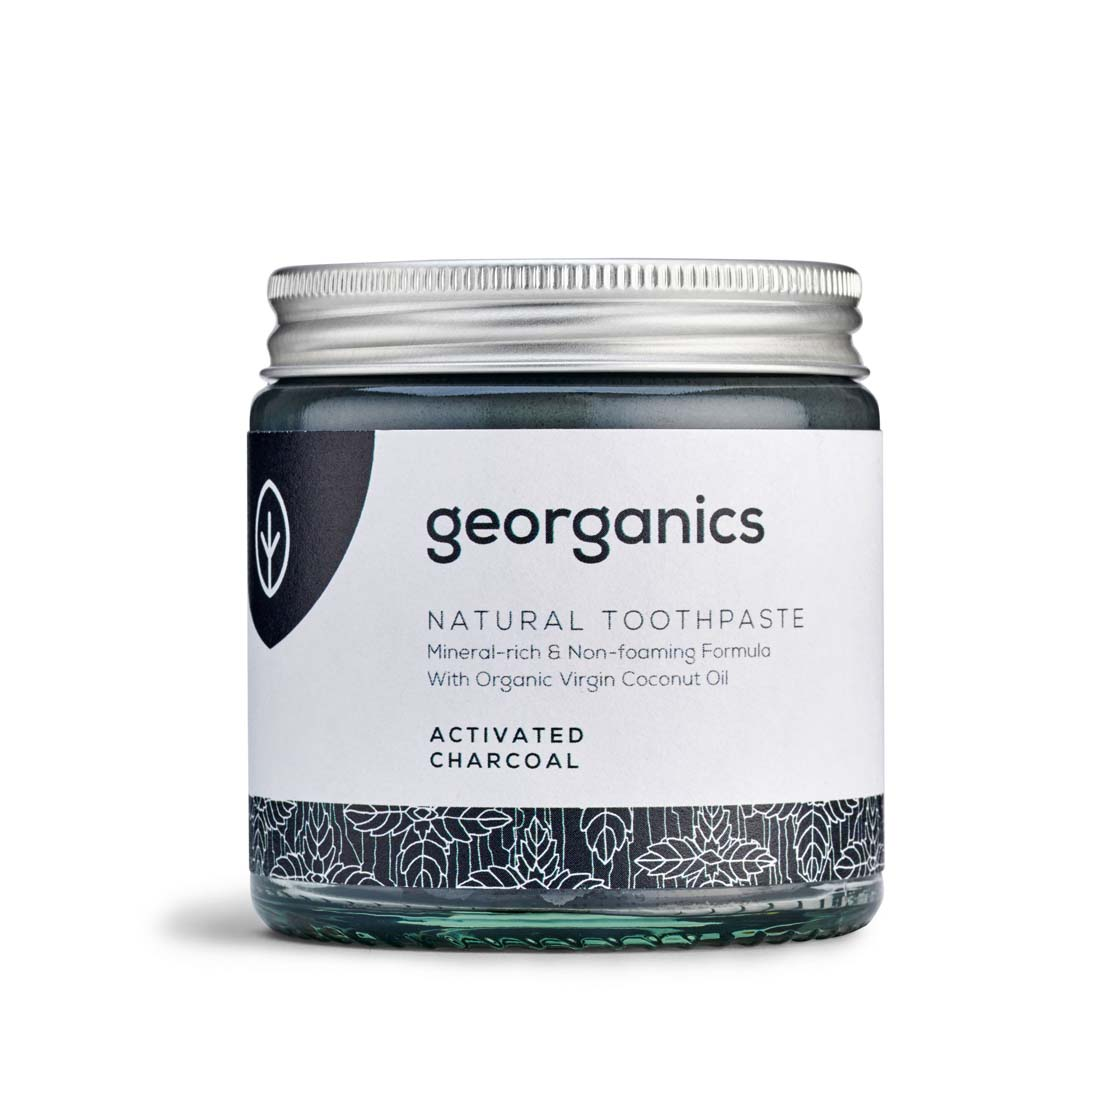 Activated Charcoal Toothpaste (Fluoride Free) by Georganics